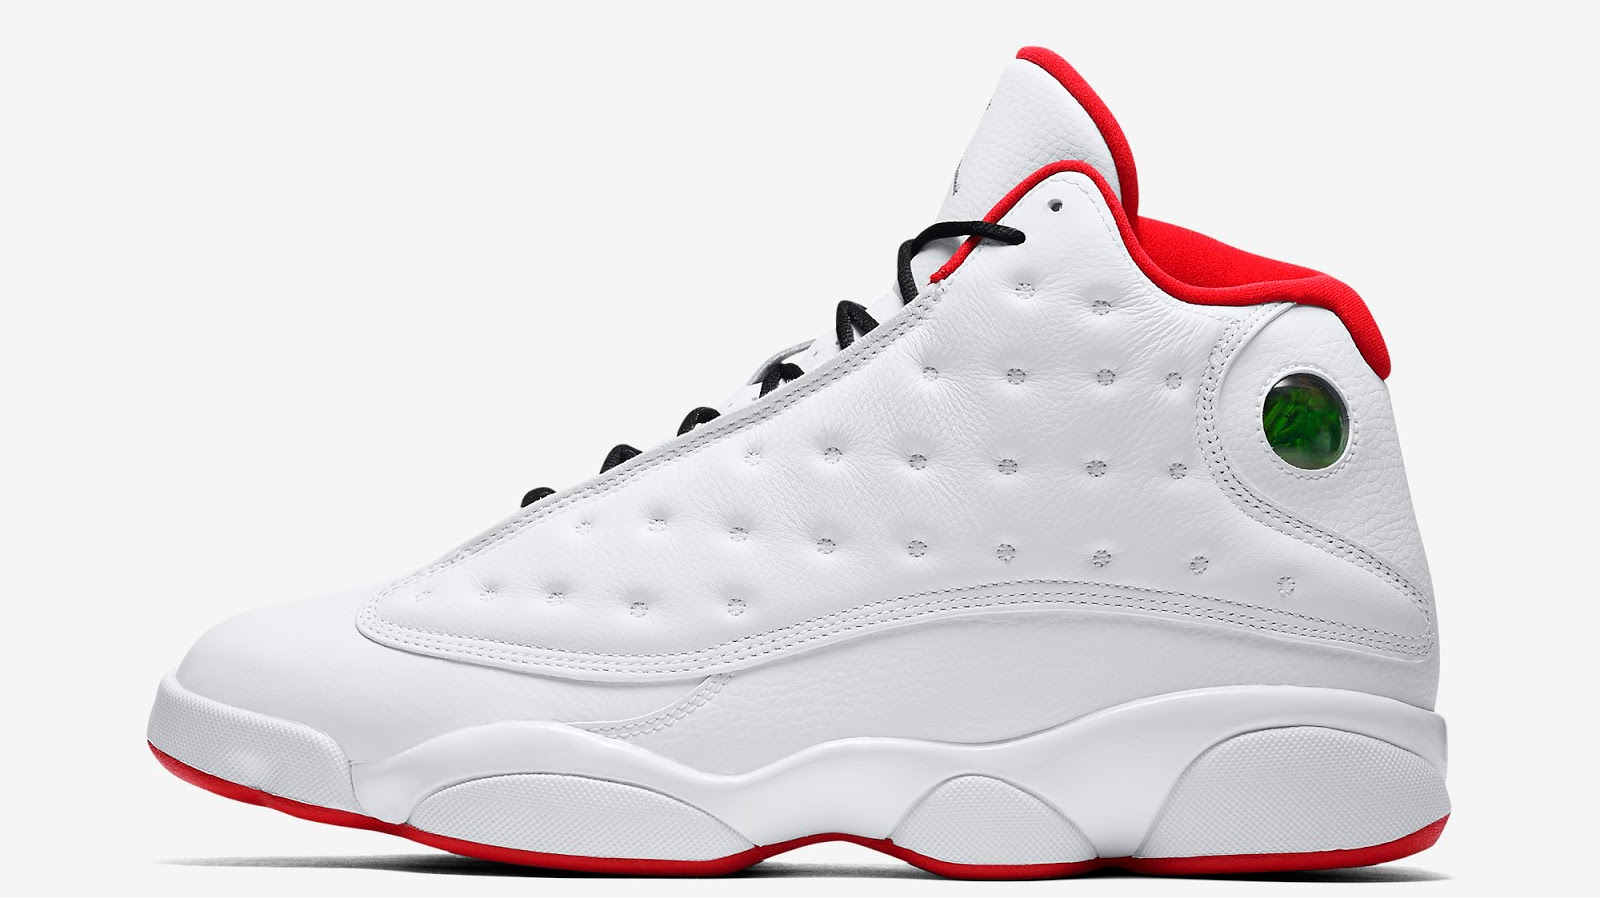 b64f44d97c21 ... sale ajordanxi your 1 source for sneaker release dates air jordan 13  500d3 4c5cf